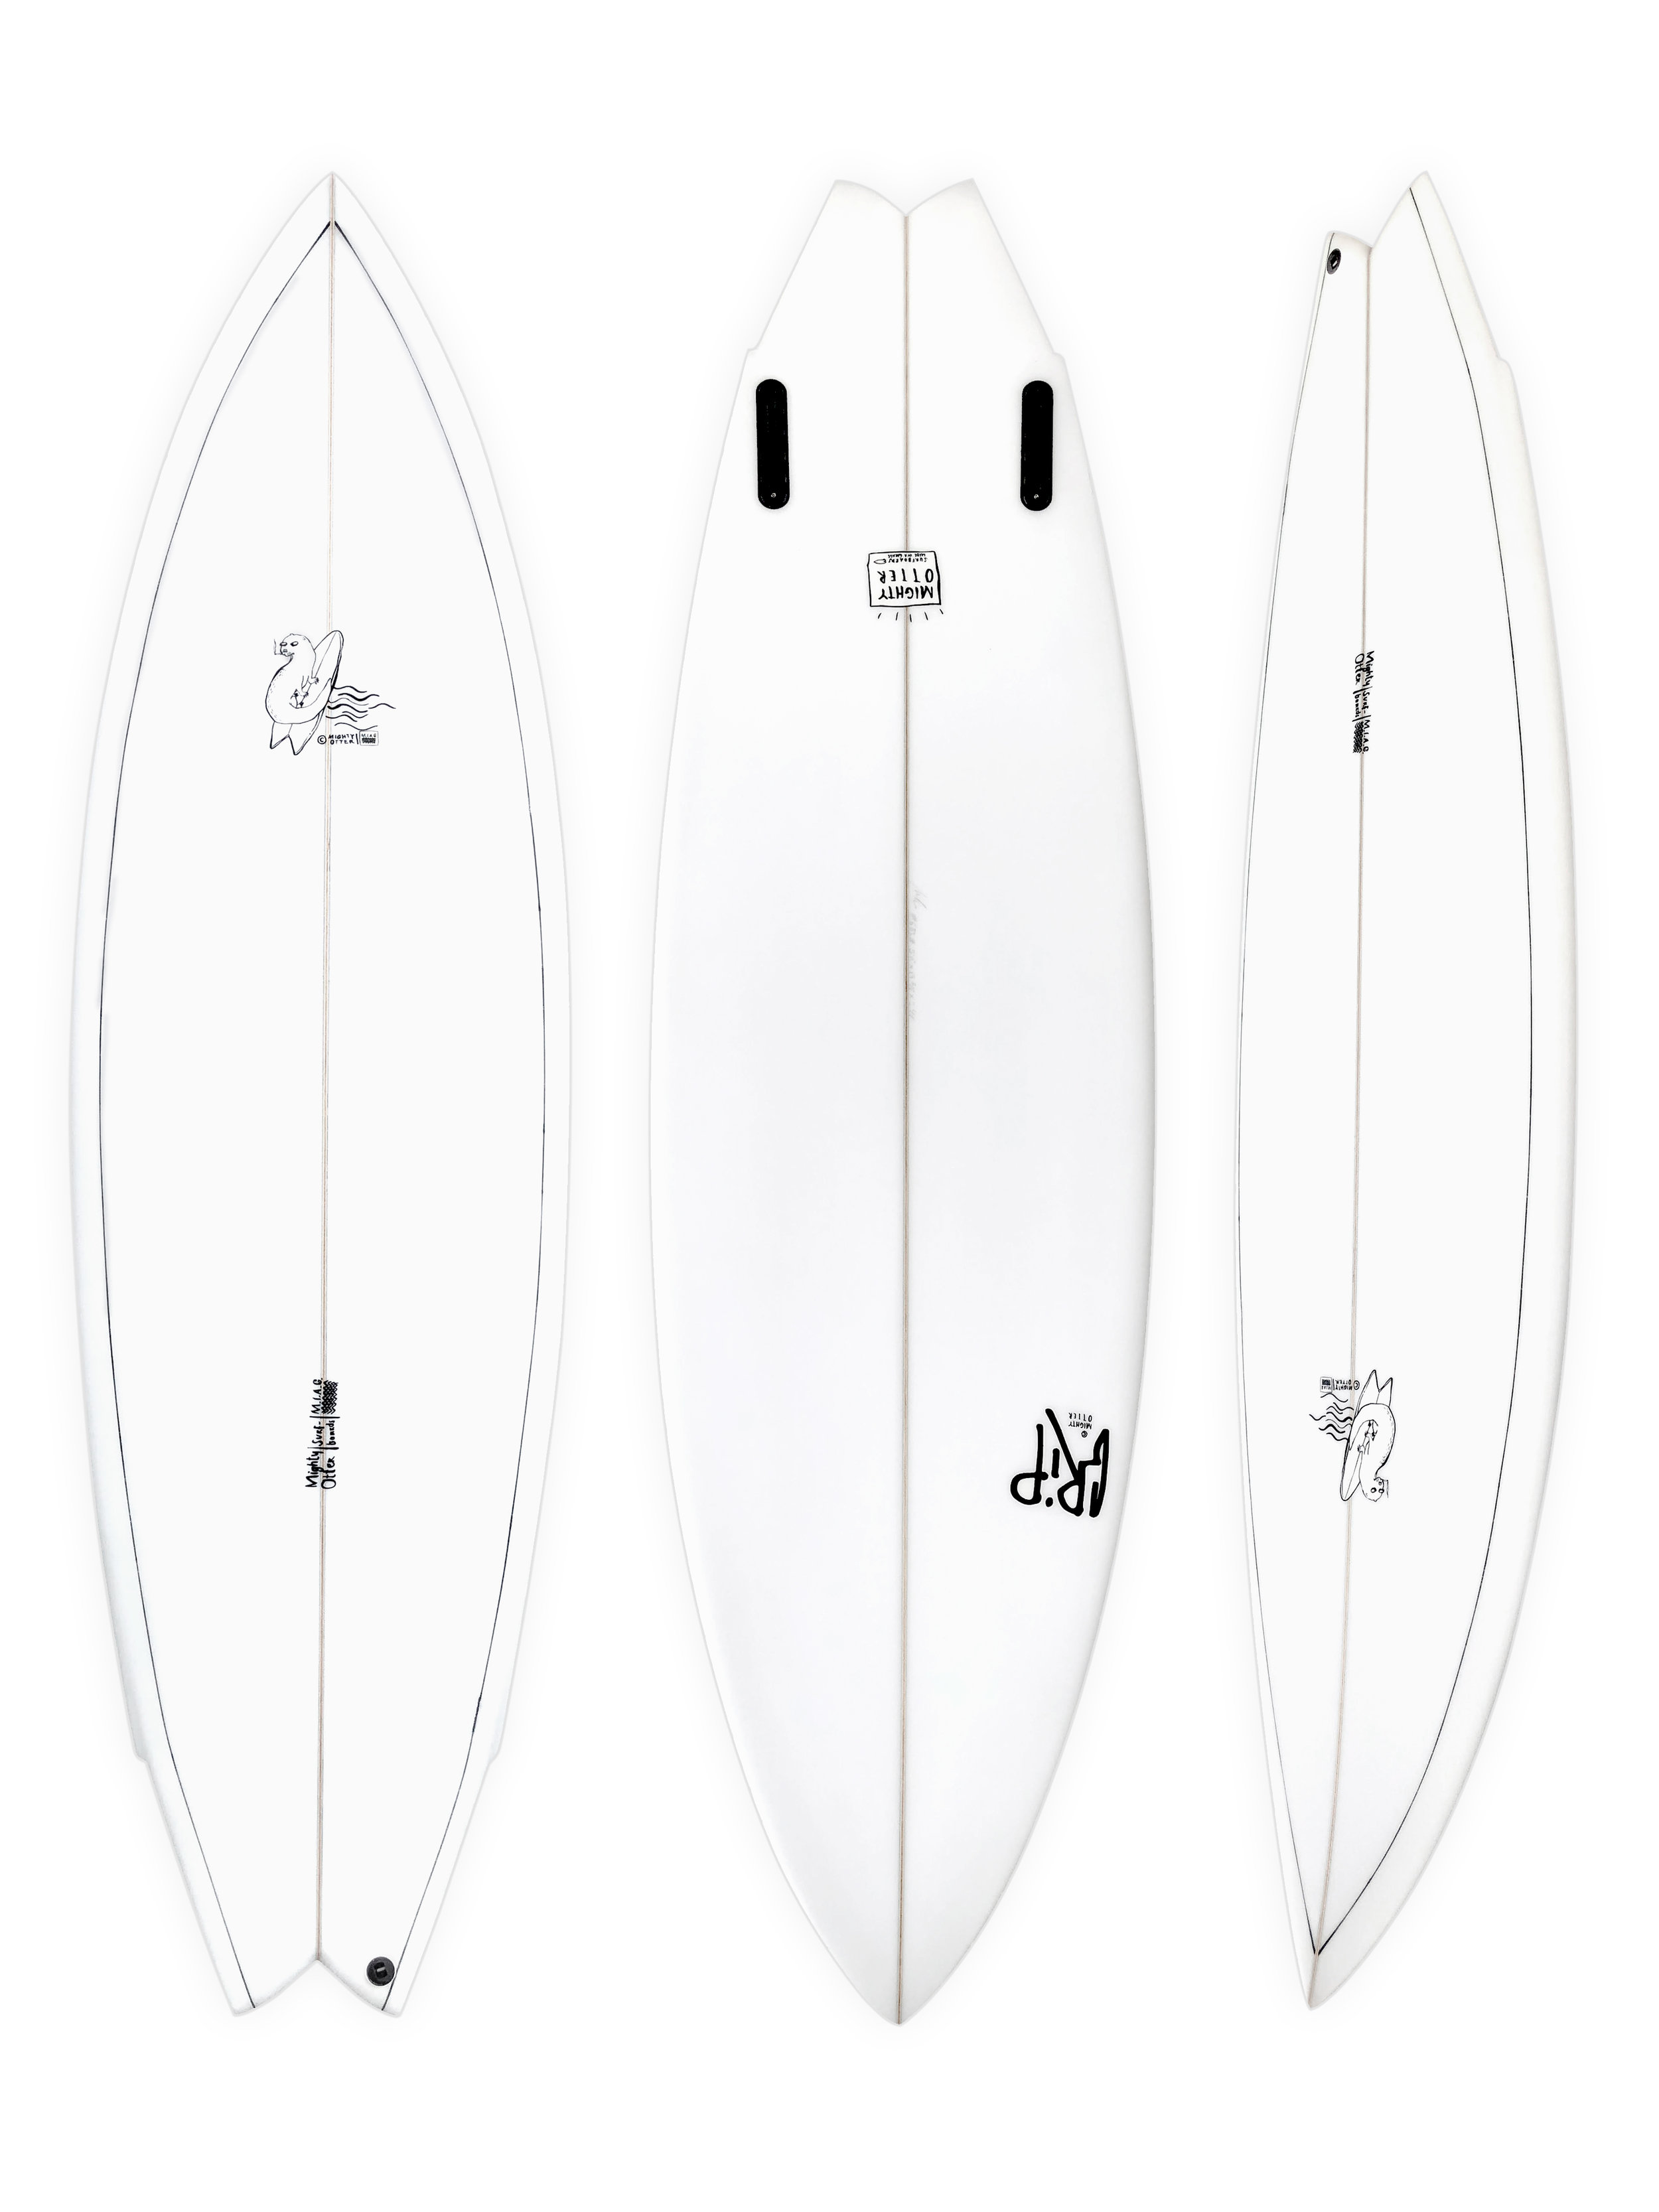 MightyOtterSurfboards_GRip_Quirn_Rohleder_Twin_Fin_Surfboard.jpg